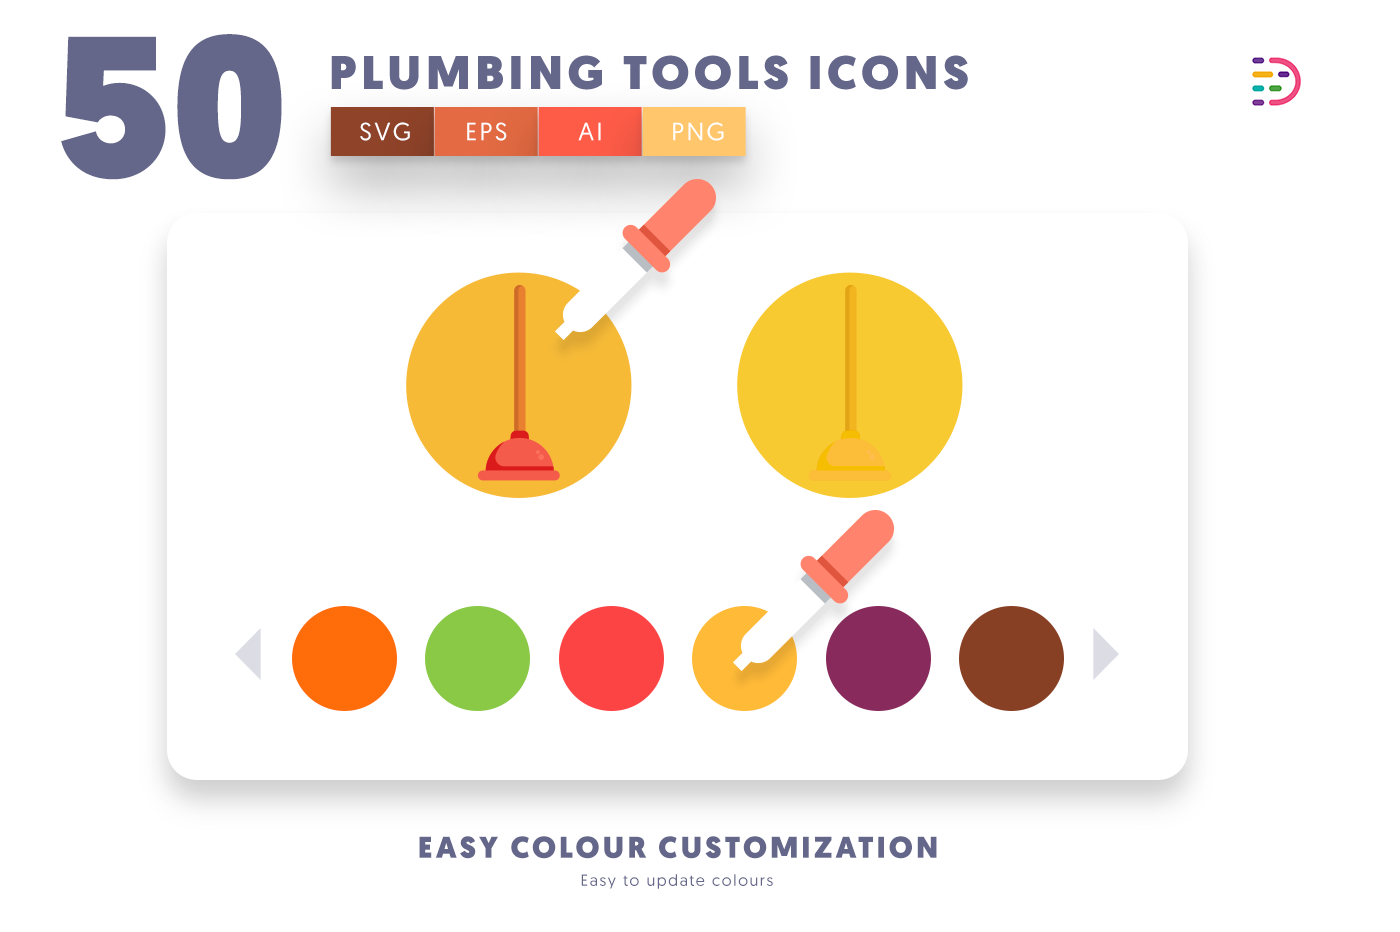 Customizable and vector 50 Plumbing Tools Icons